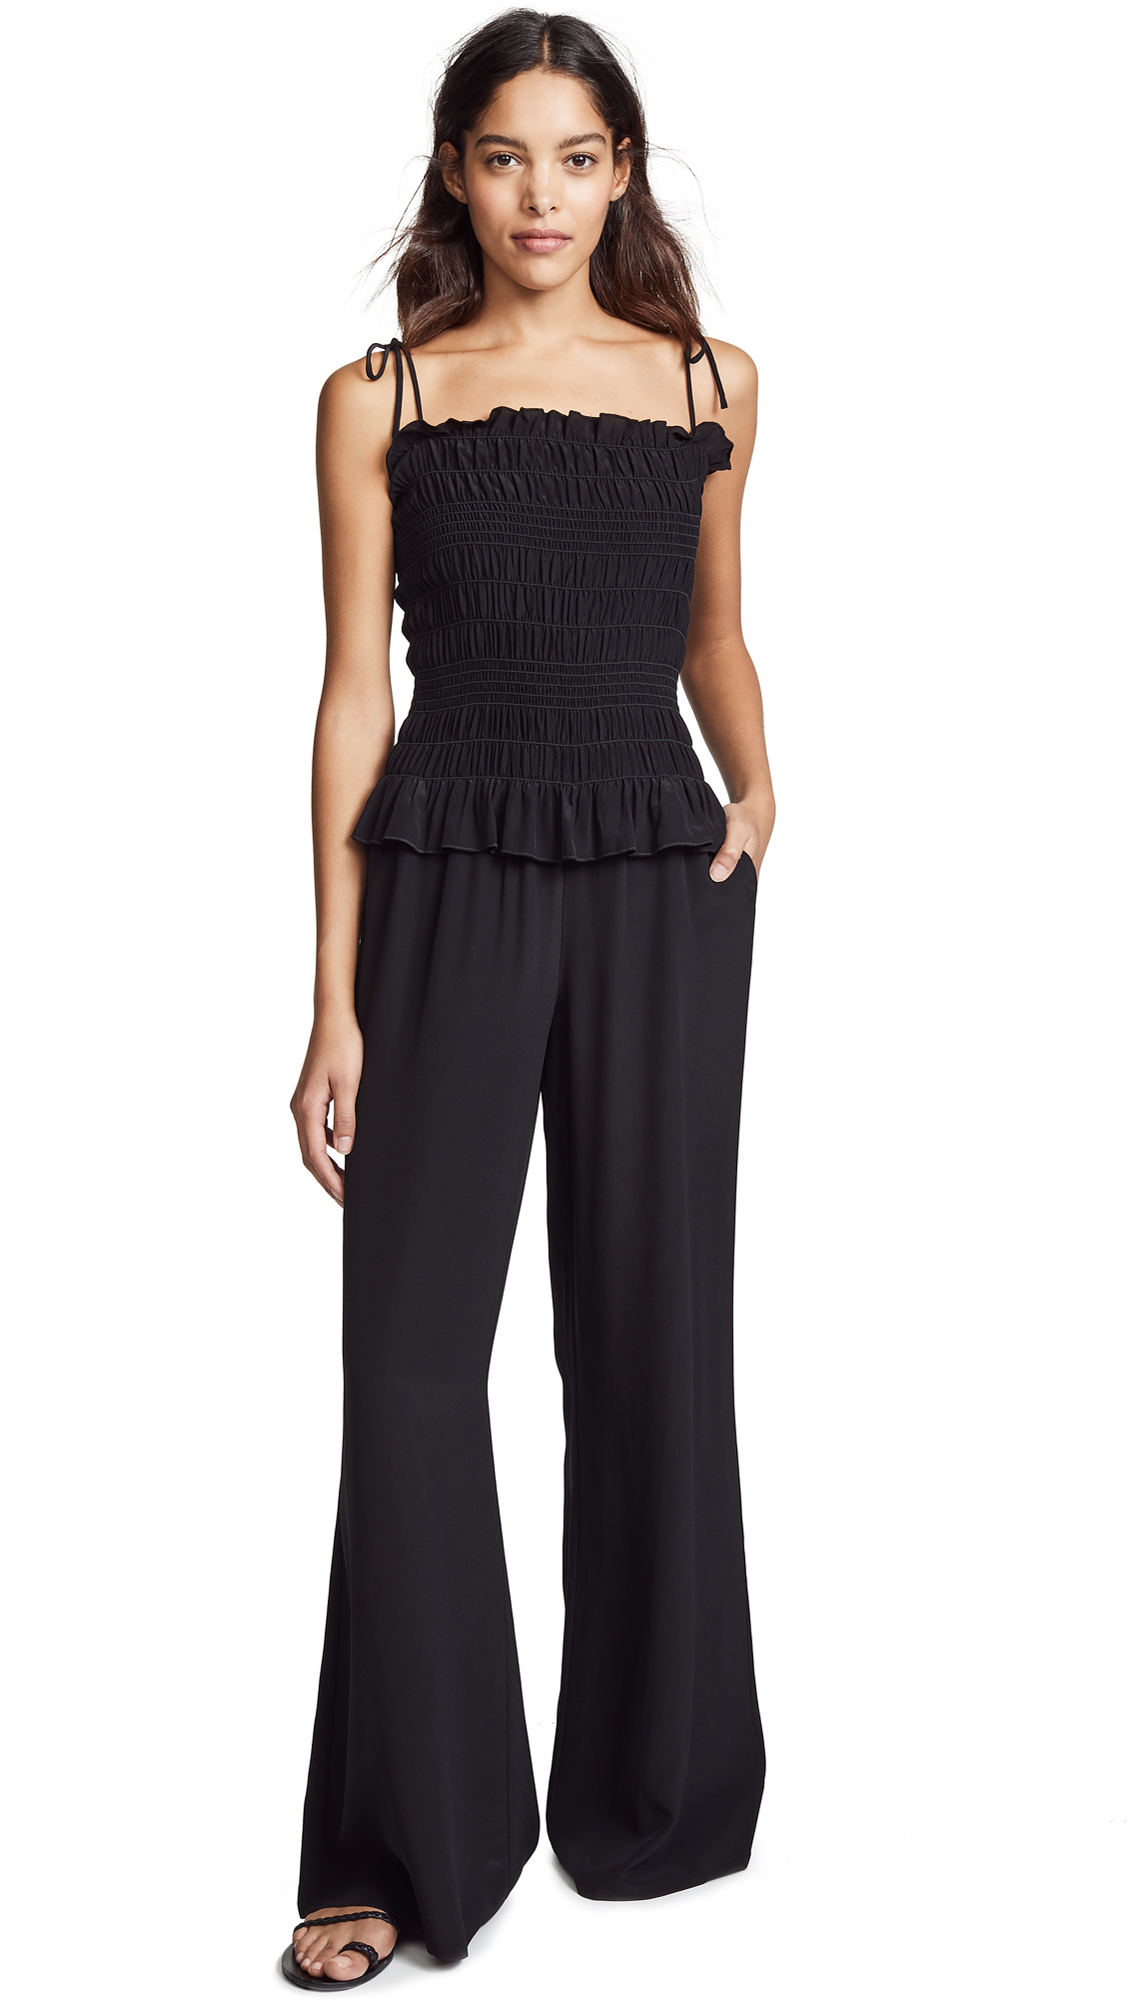 Tory Burch Smocked Jumpsuit - Black